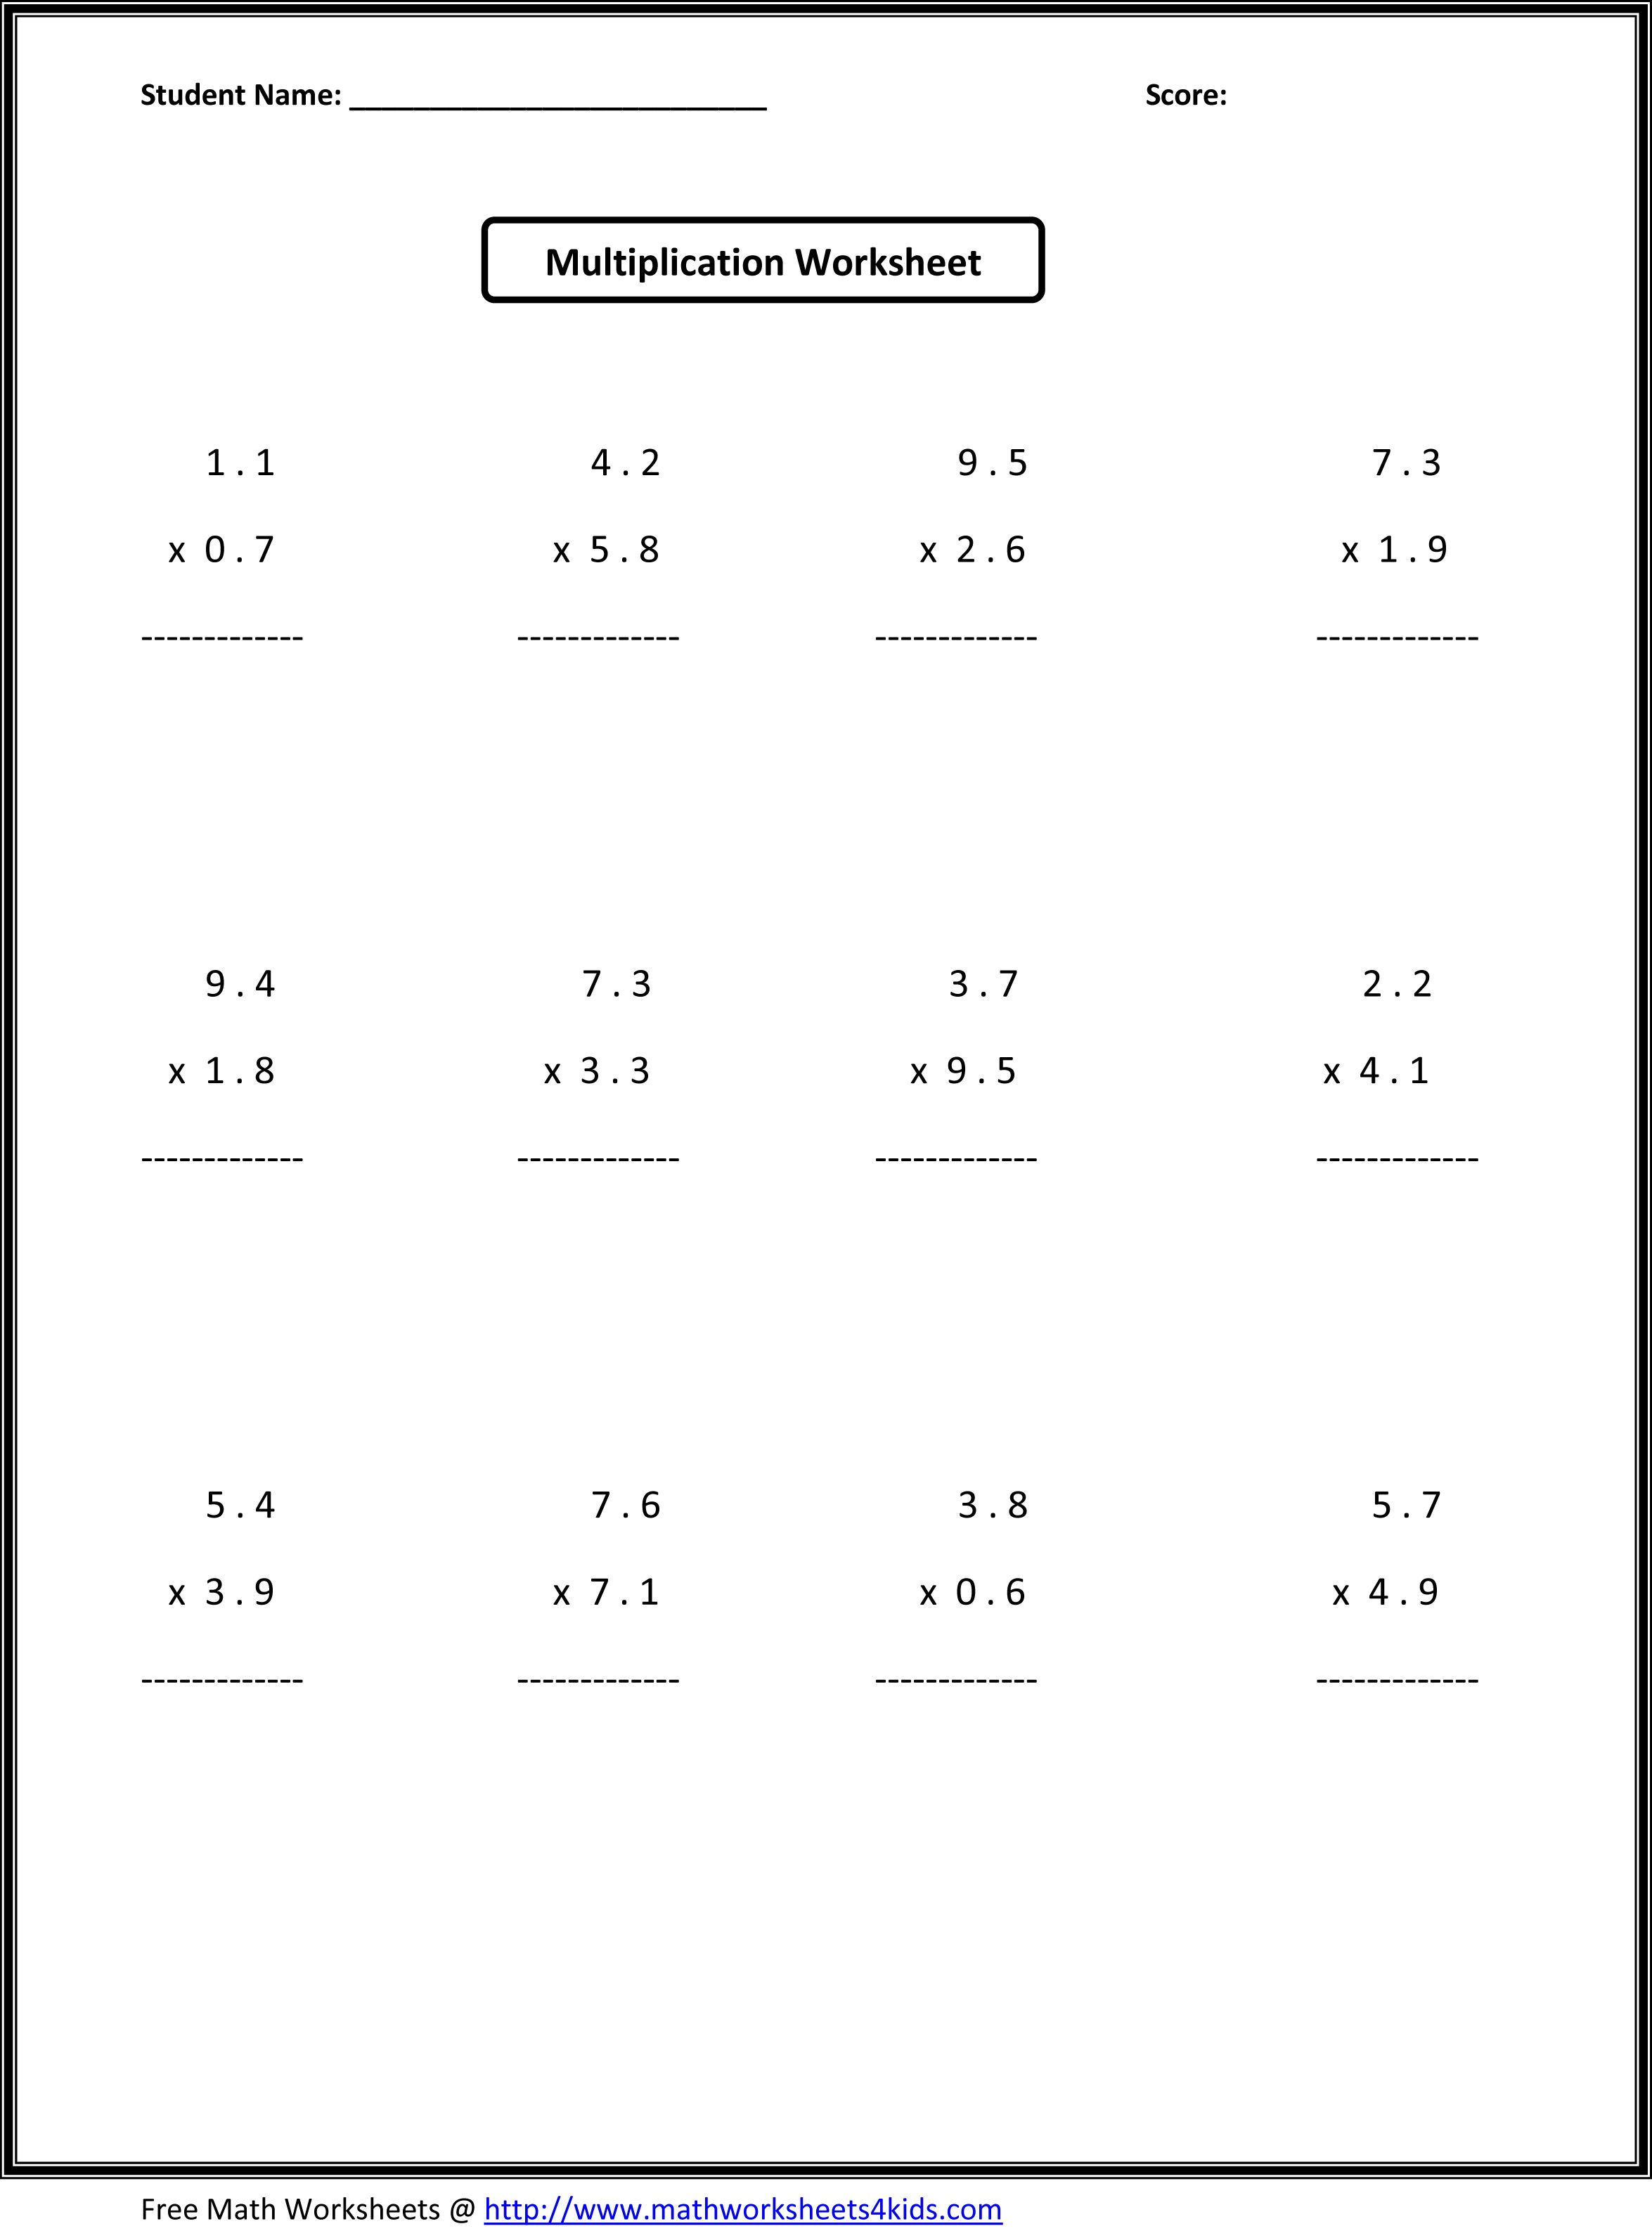 Worksheets 6th Grade Worksheets Math math decimals worksheets riddles 4th 5th 6th 7th grade sixth have ratio multiplying and dividing fractions algebraic expressions equations inequalities geom